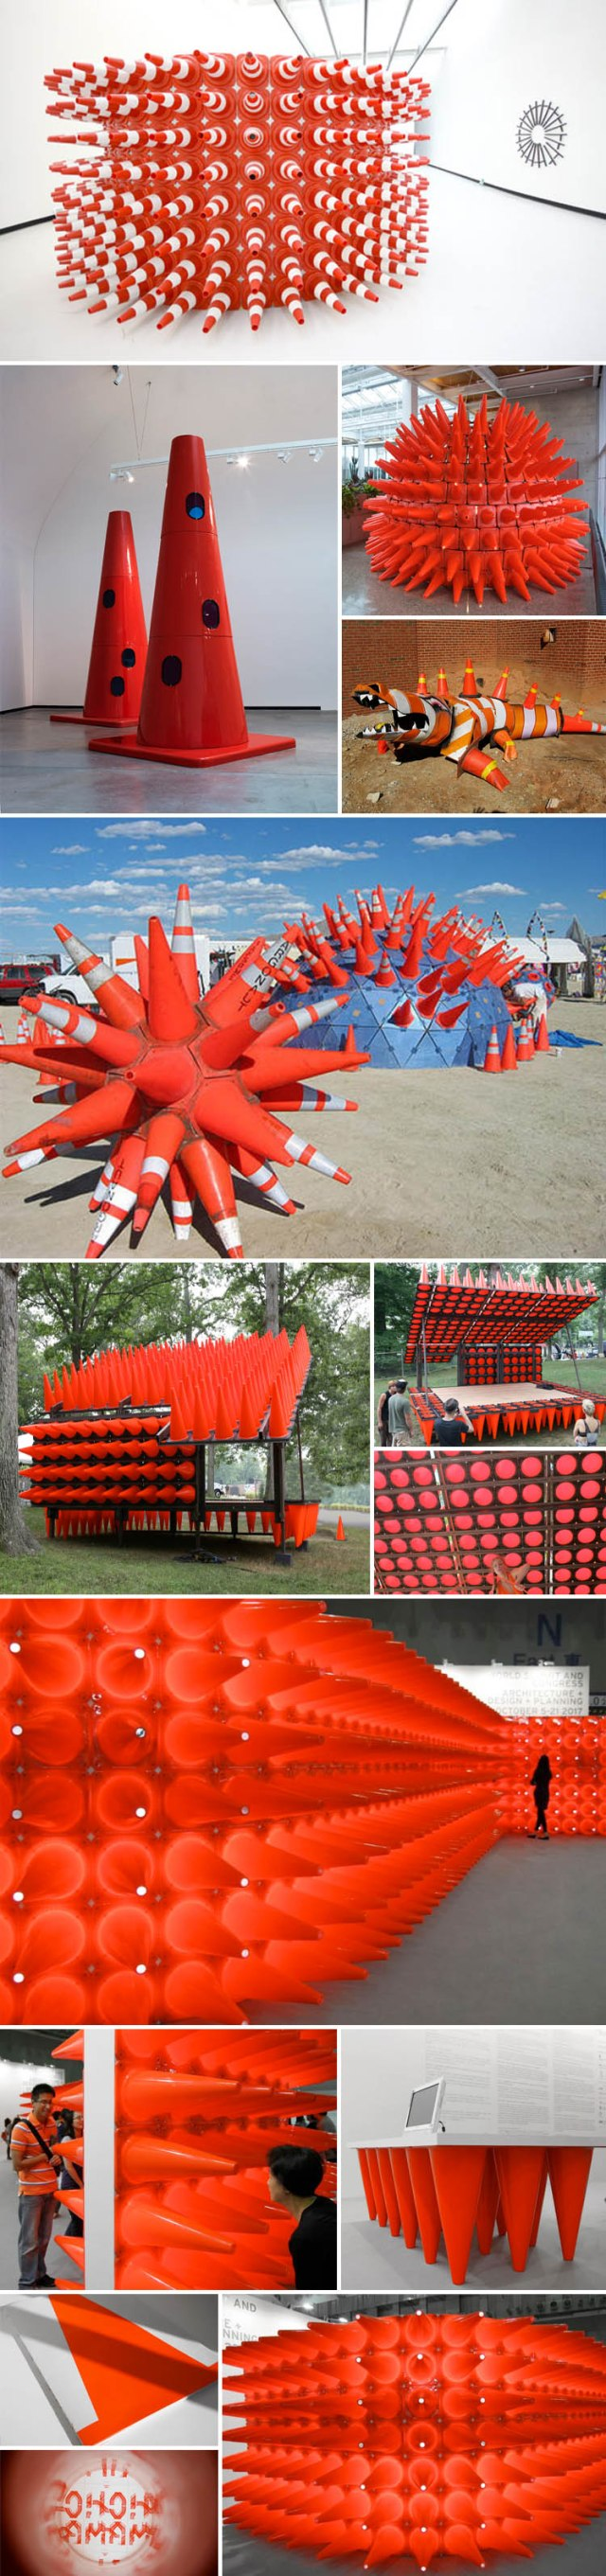 Teddy Cruz, Paprika, Dennis Oppenheim, Burning Man, Tomer Diamant, traffic cones